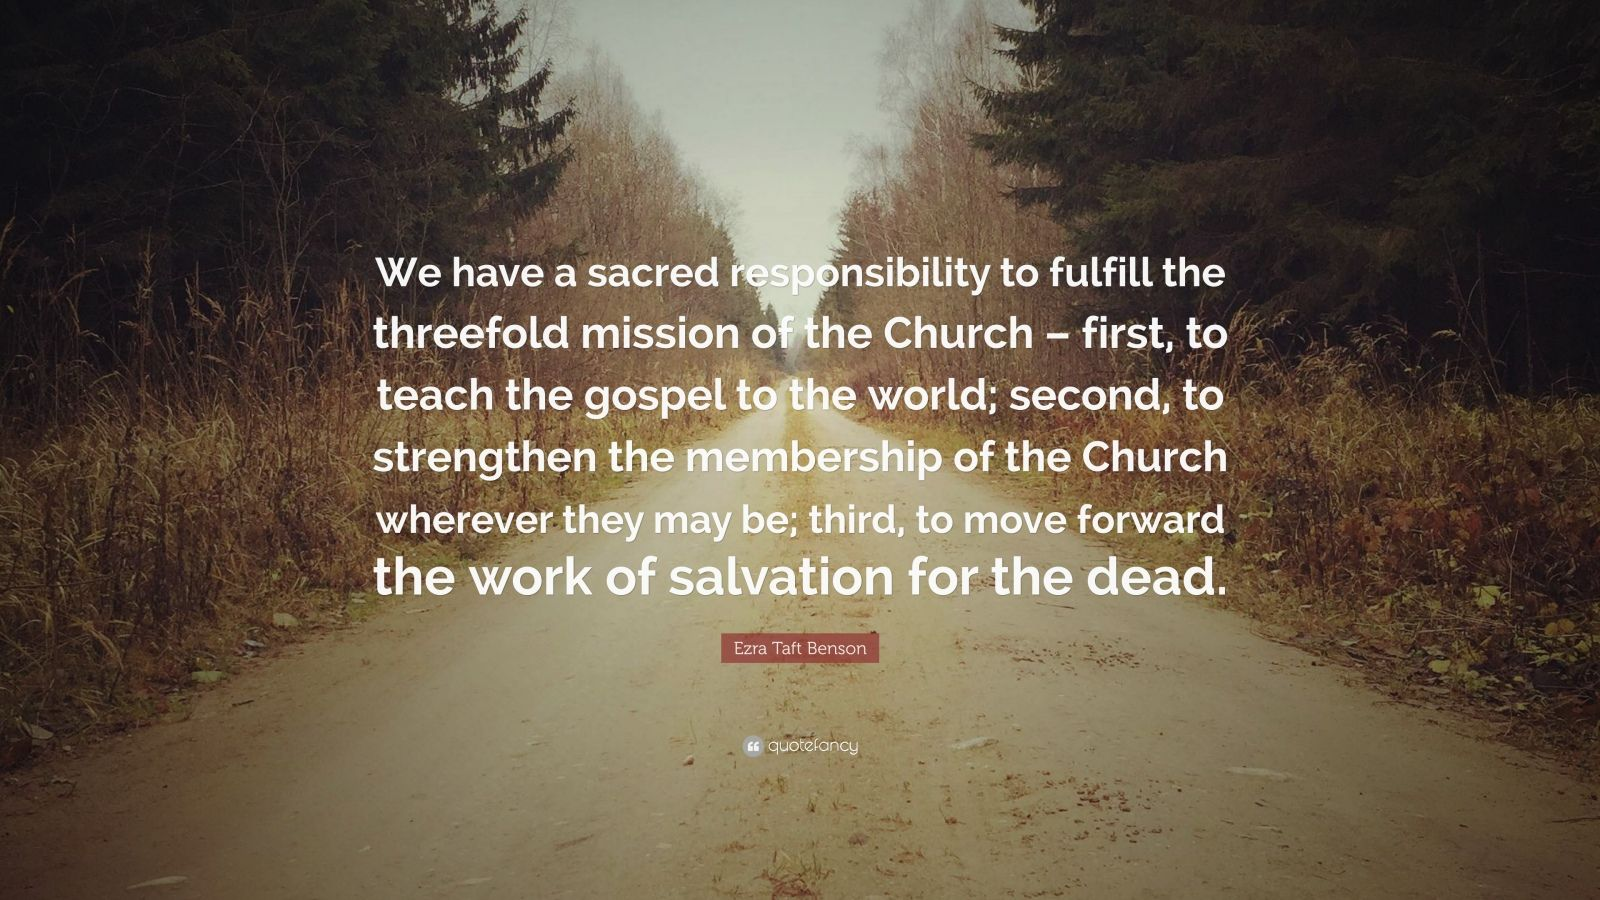 """Ezra Taft Benson Quote: """"We have a sacred responsibility to fulfill the threefold mission of the Church – first, to teach the gospel to the world; second, to strengthen the membership of the Church wherever they may be; third, to move forward the work of salvation for the dead."""""""